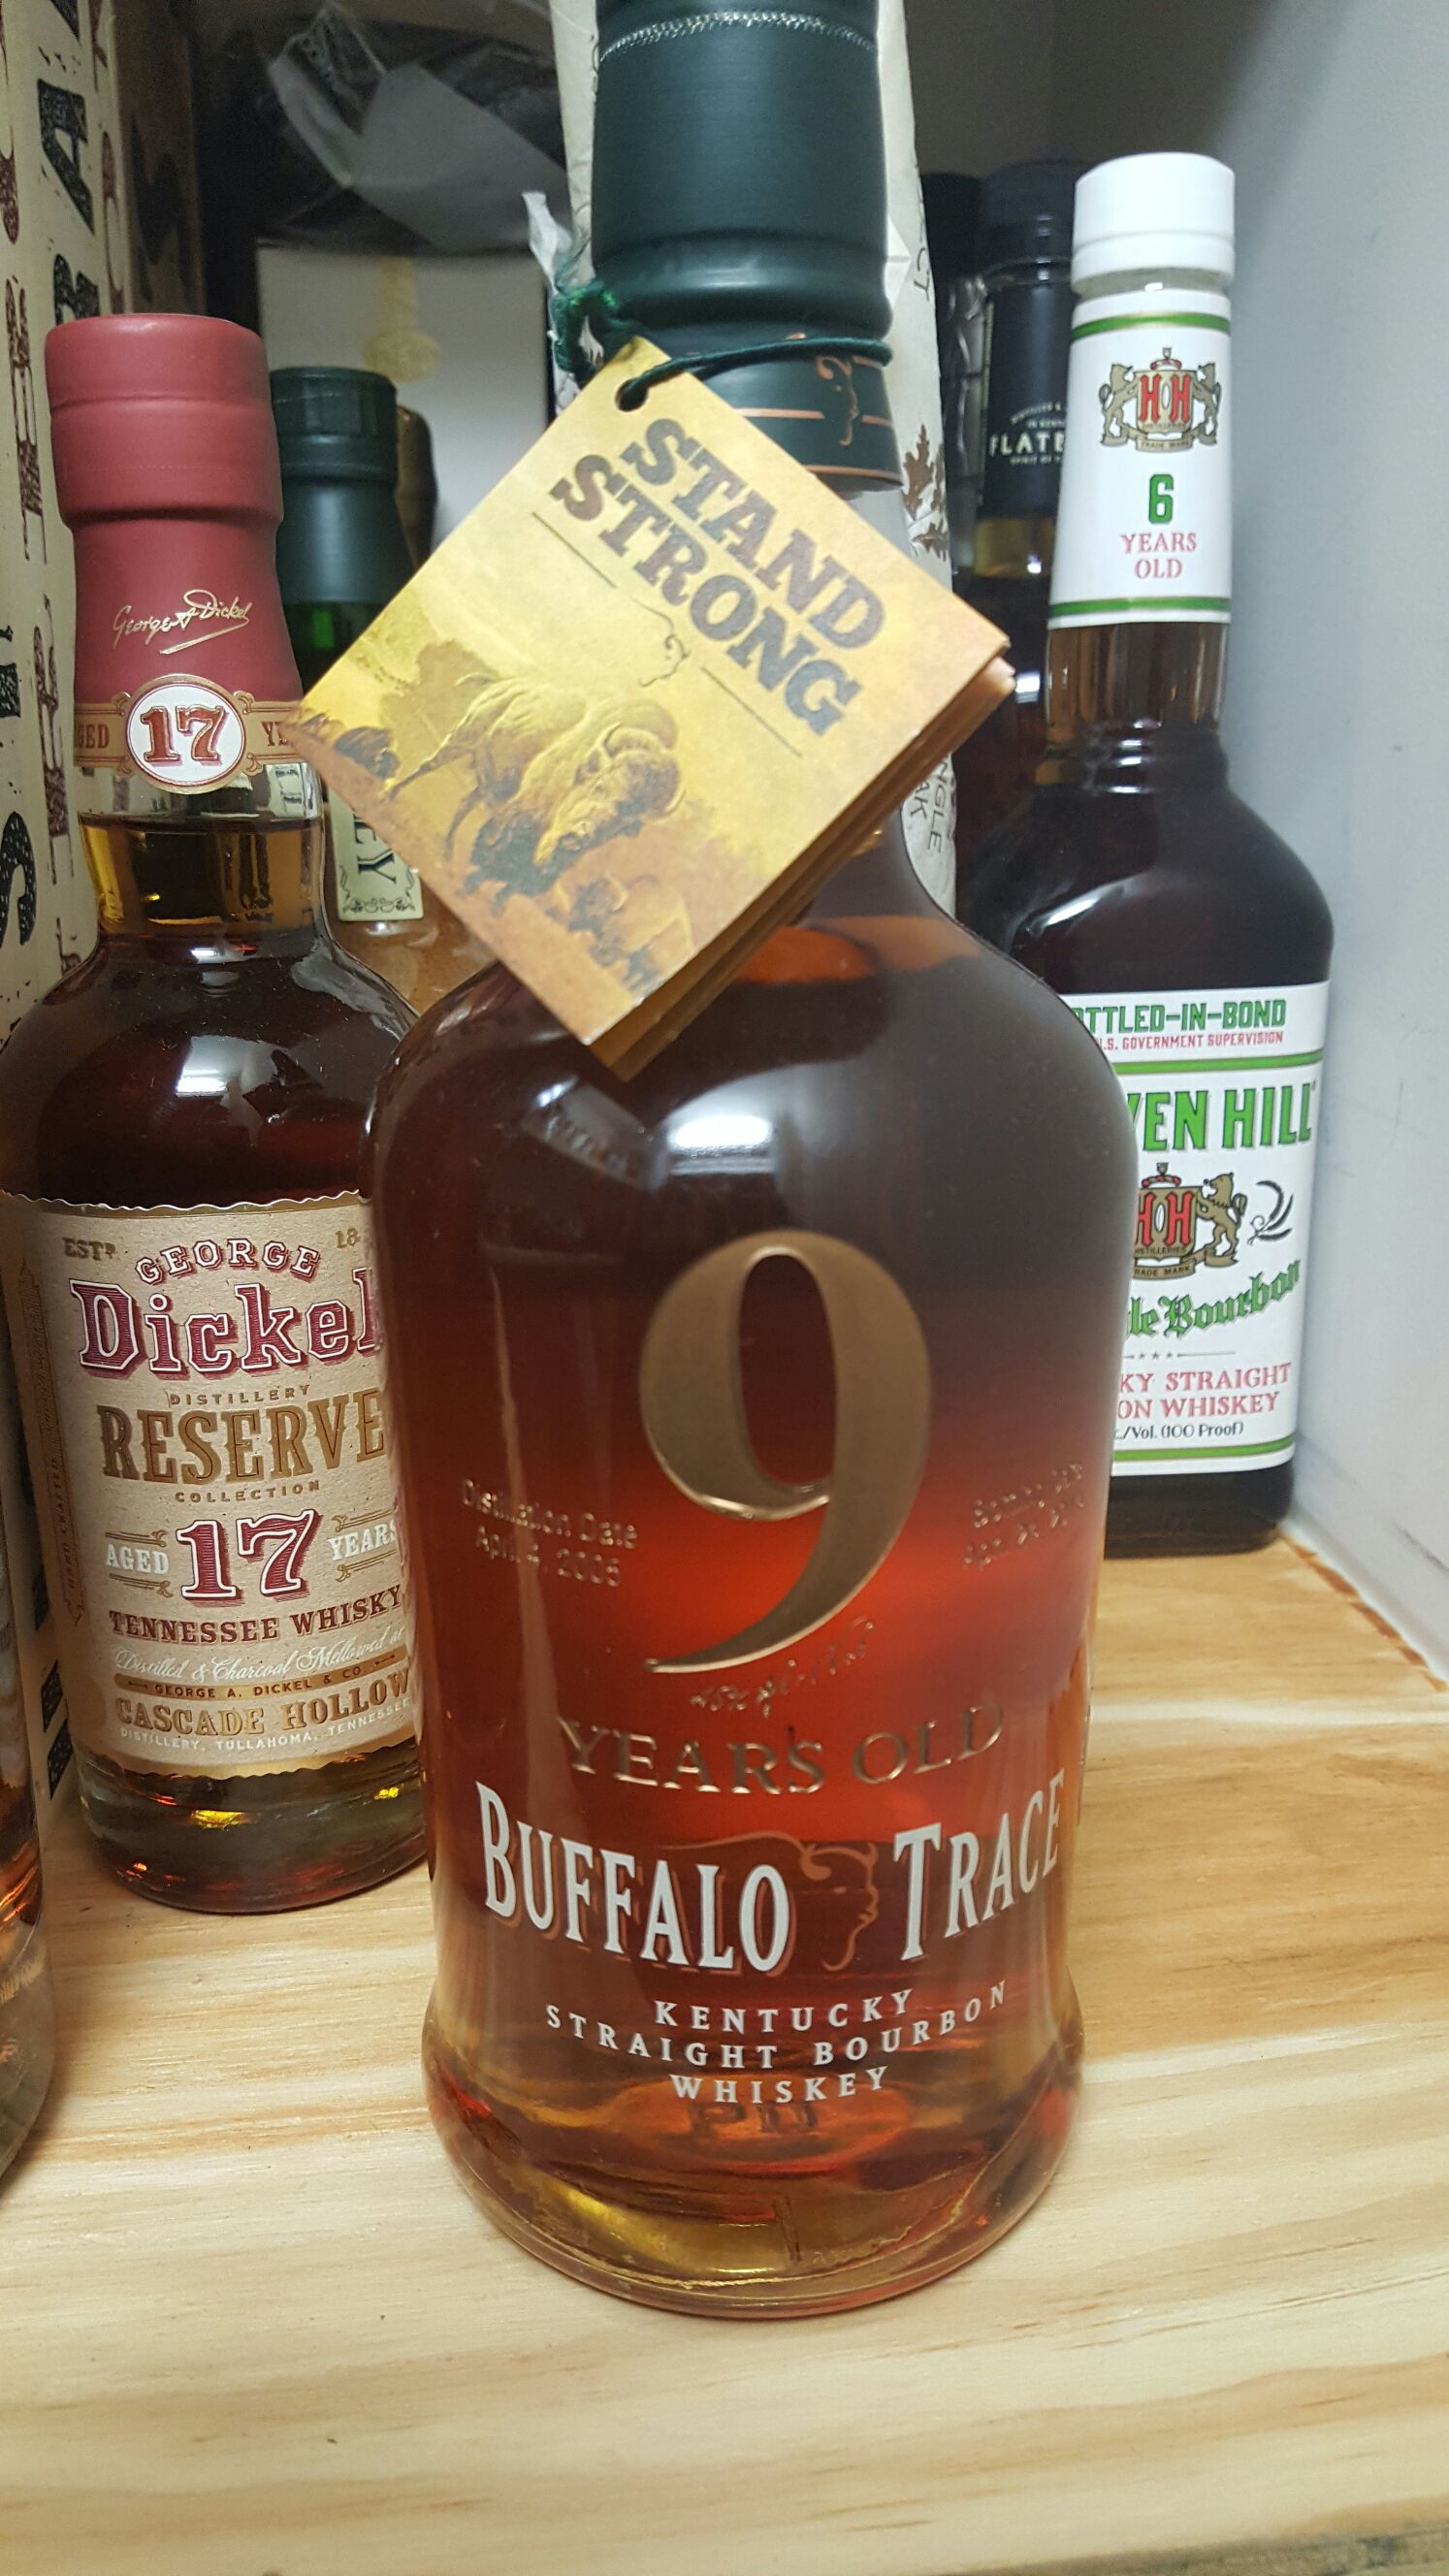 Buffalo trace 9yr special bottle Alcohol - Buffalo Trace front image (front cover)